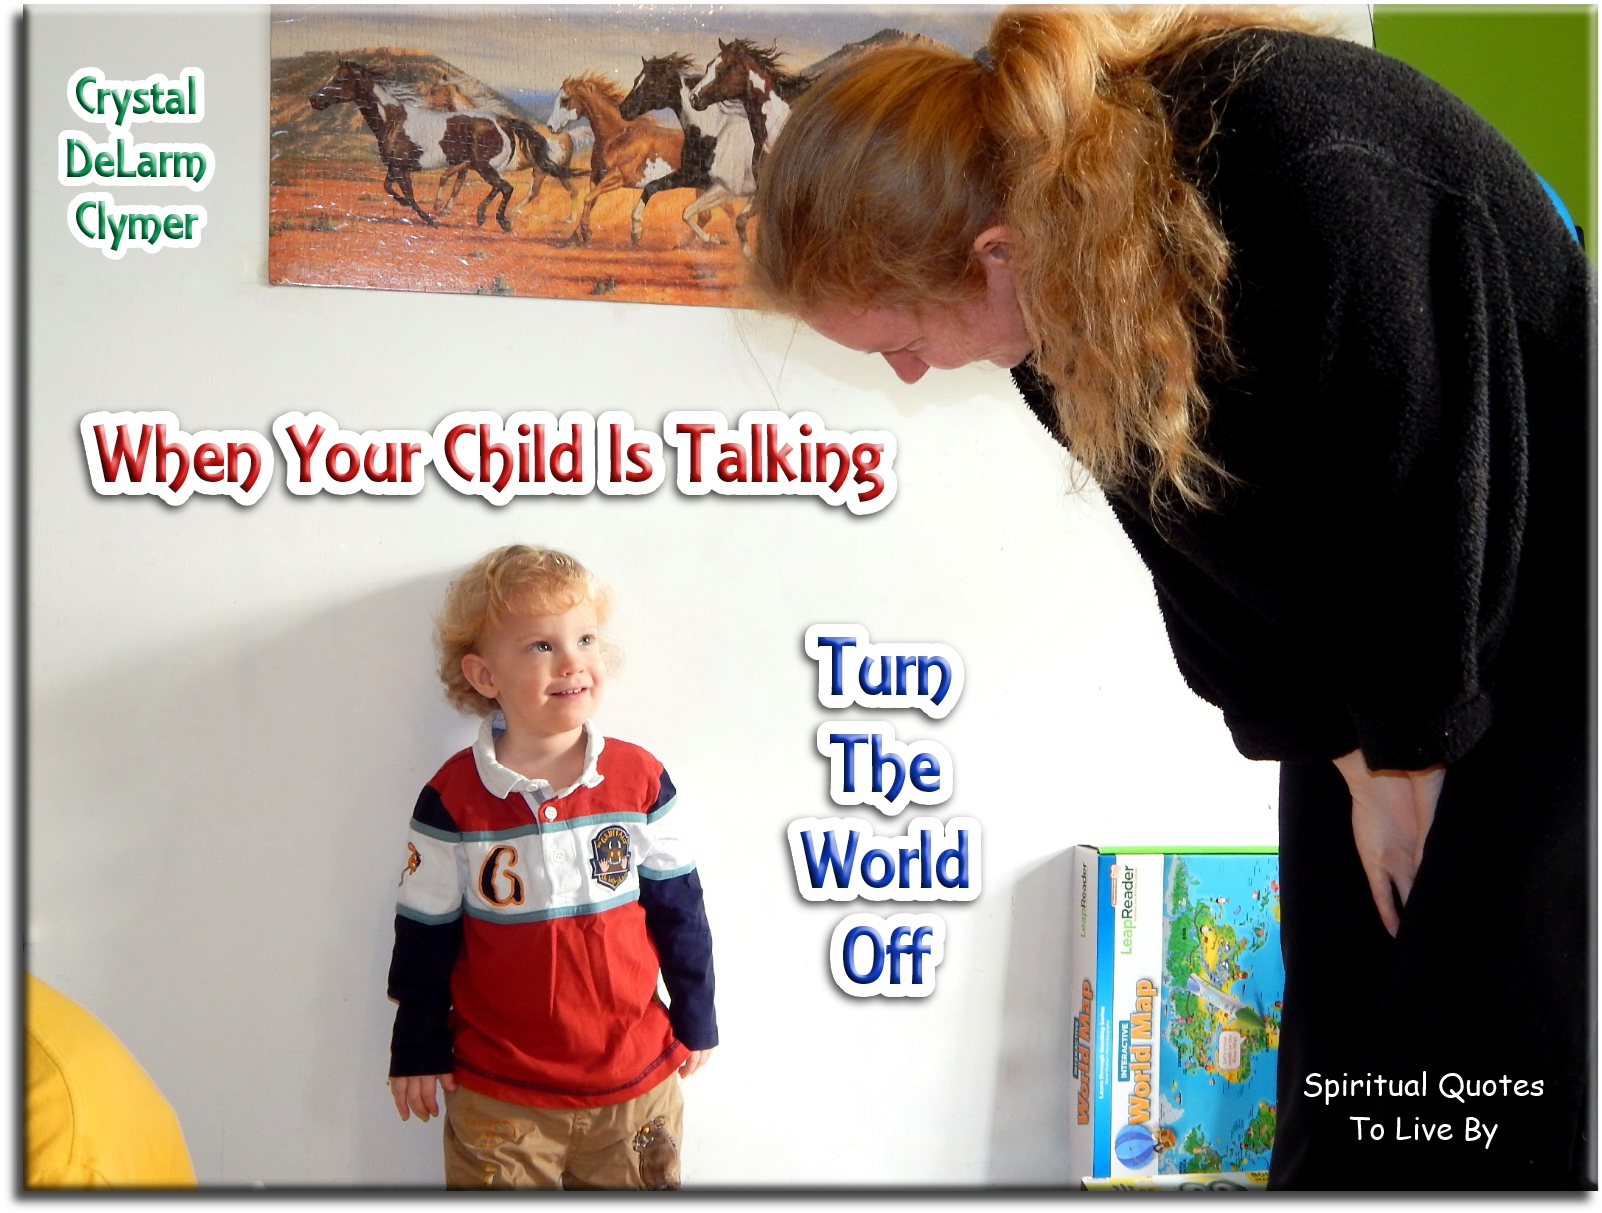 Crystal DeLarm Clymer quote: When your child is talking, turn the world off. - Spiritual Quotes To Live By